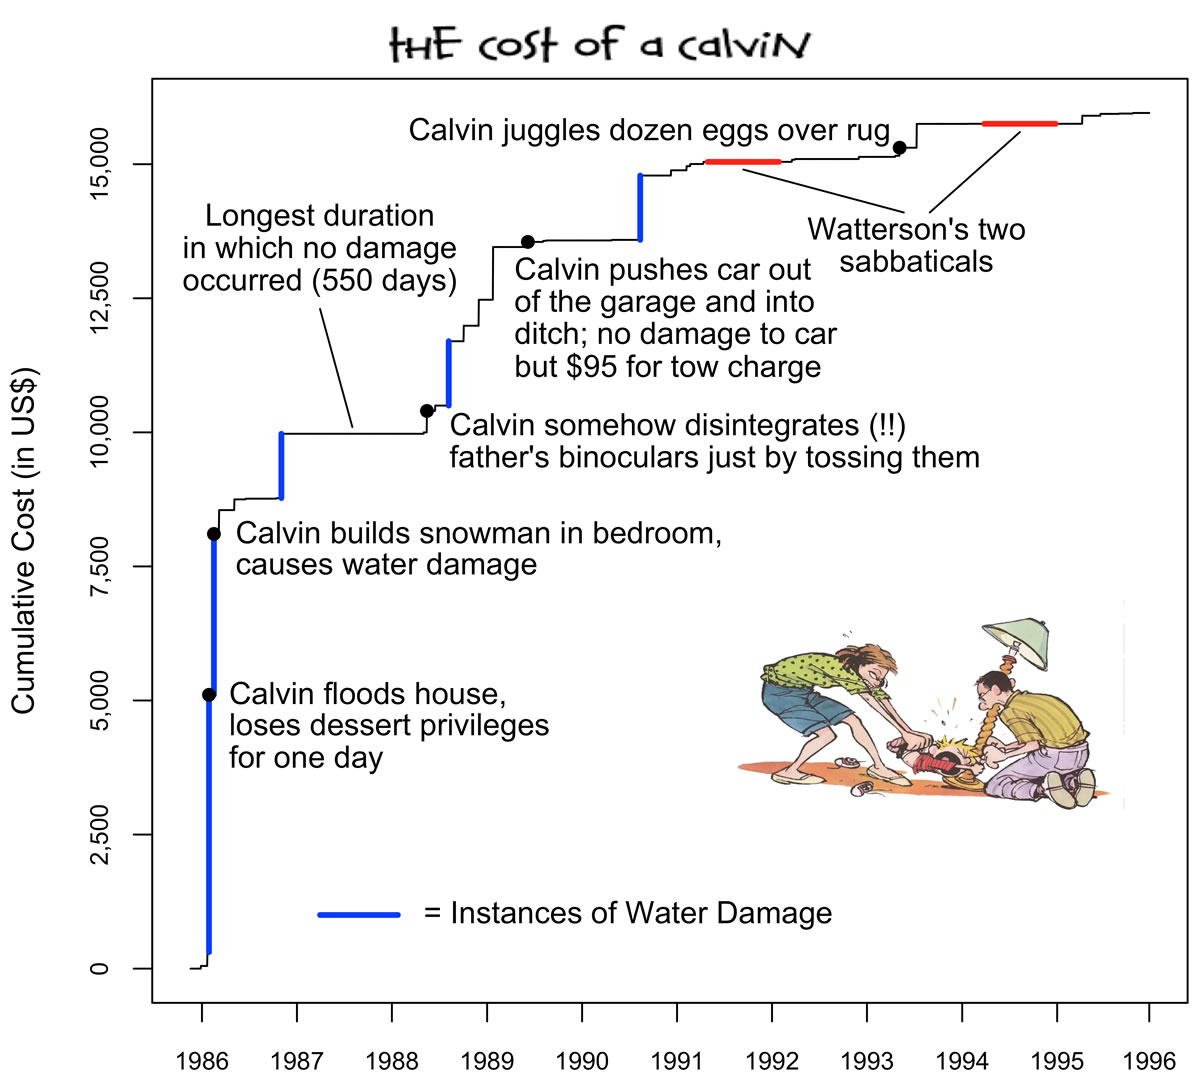 the cost of a calvin